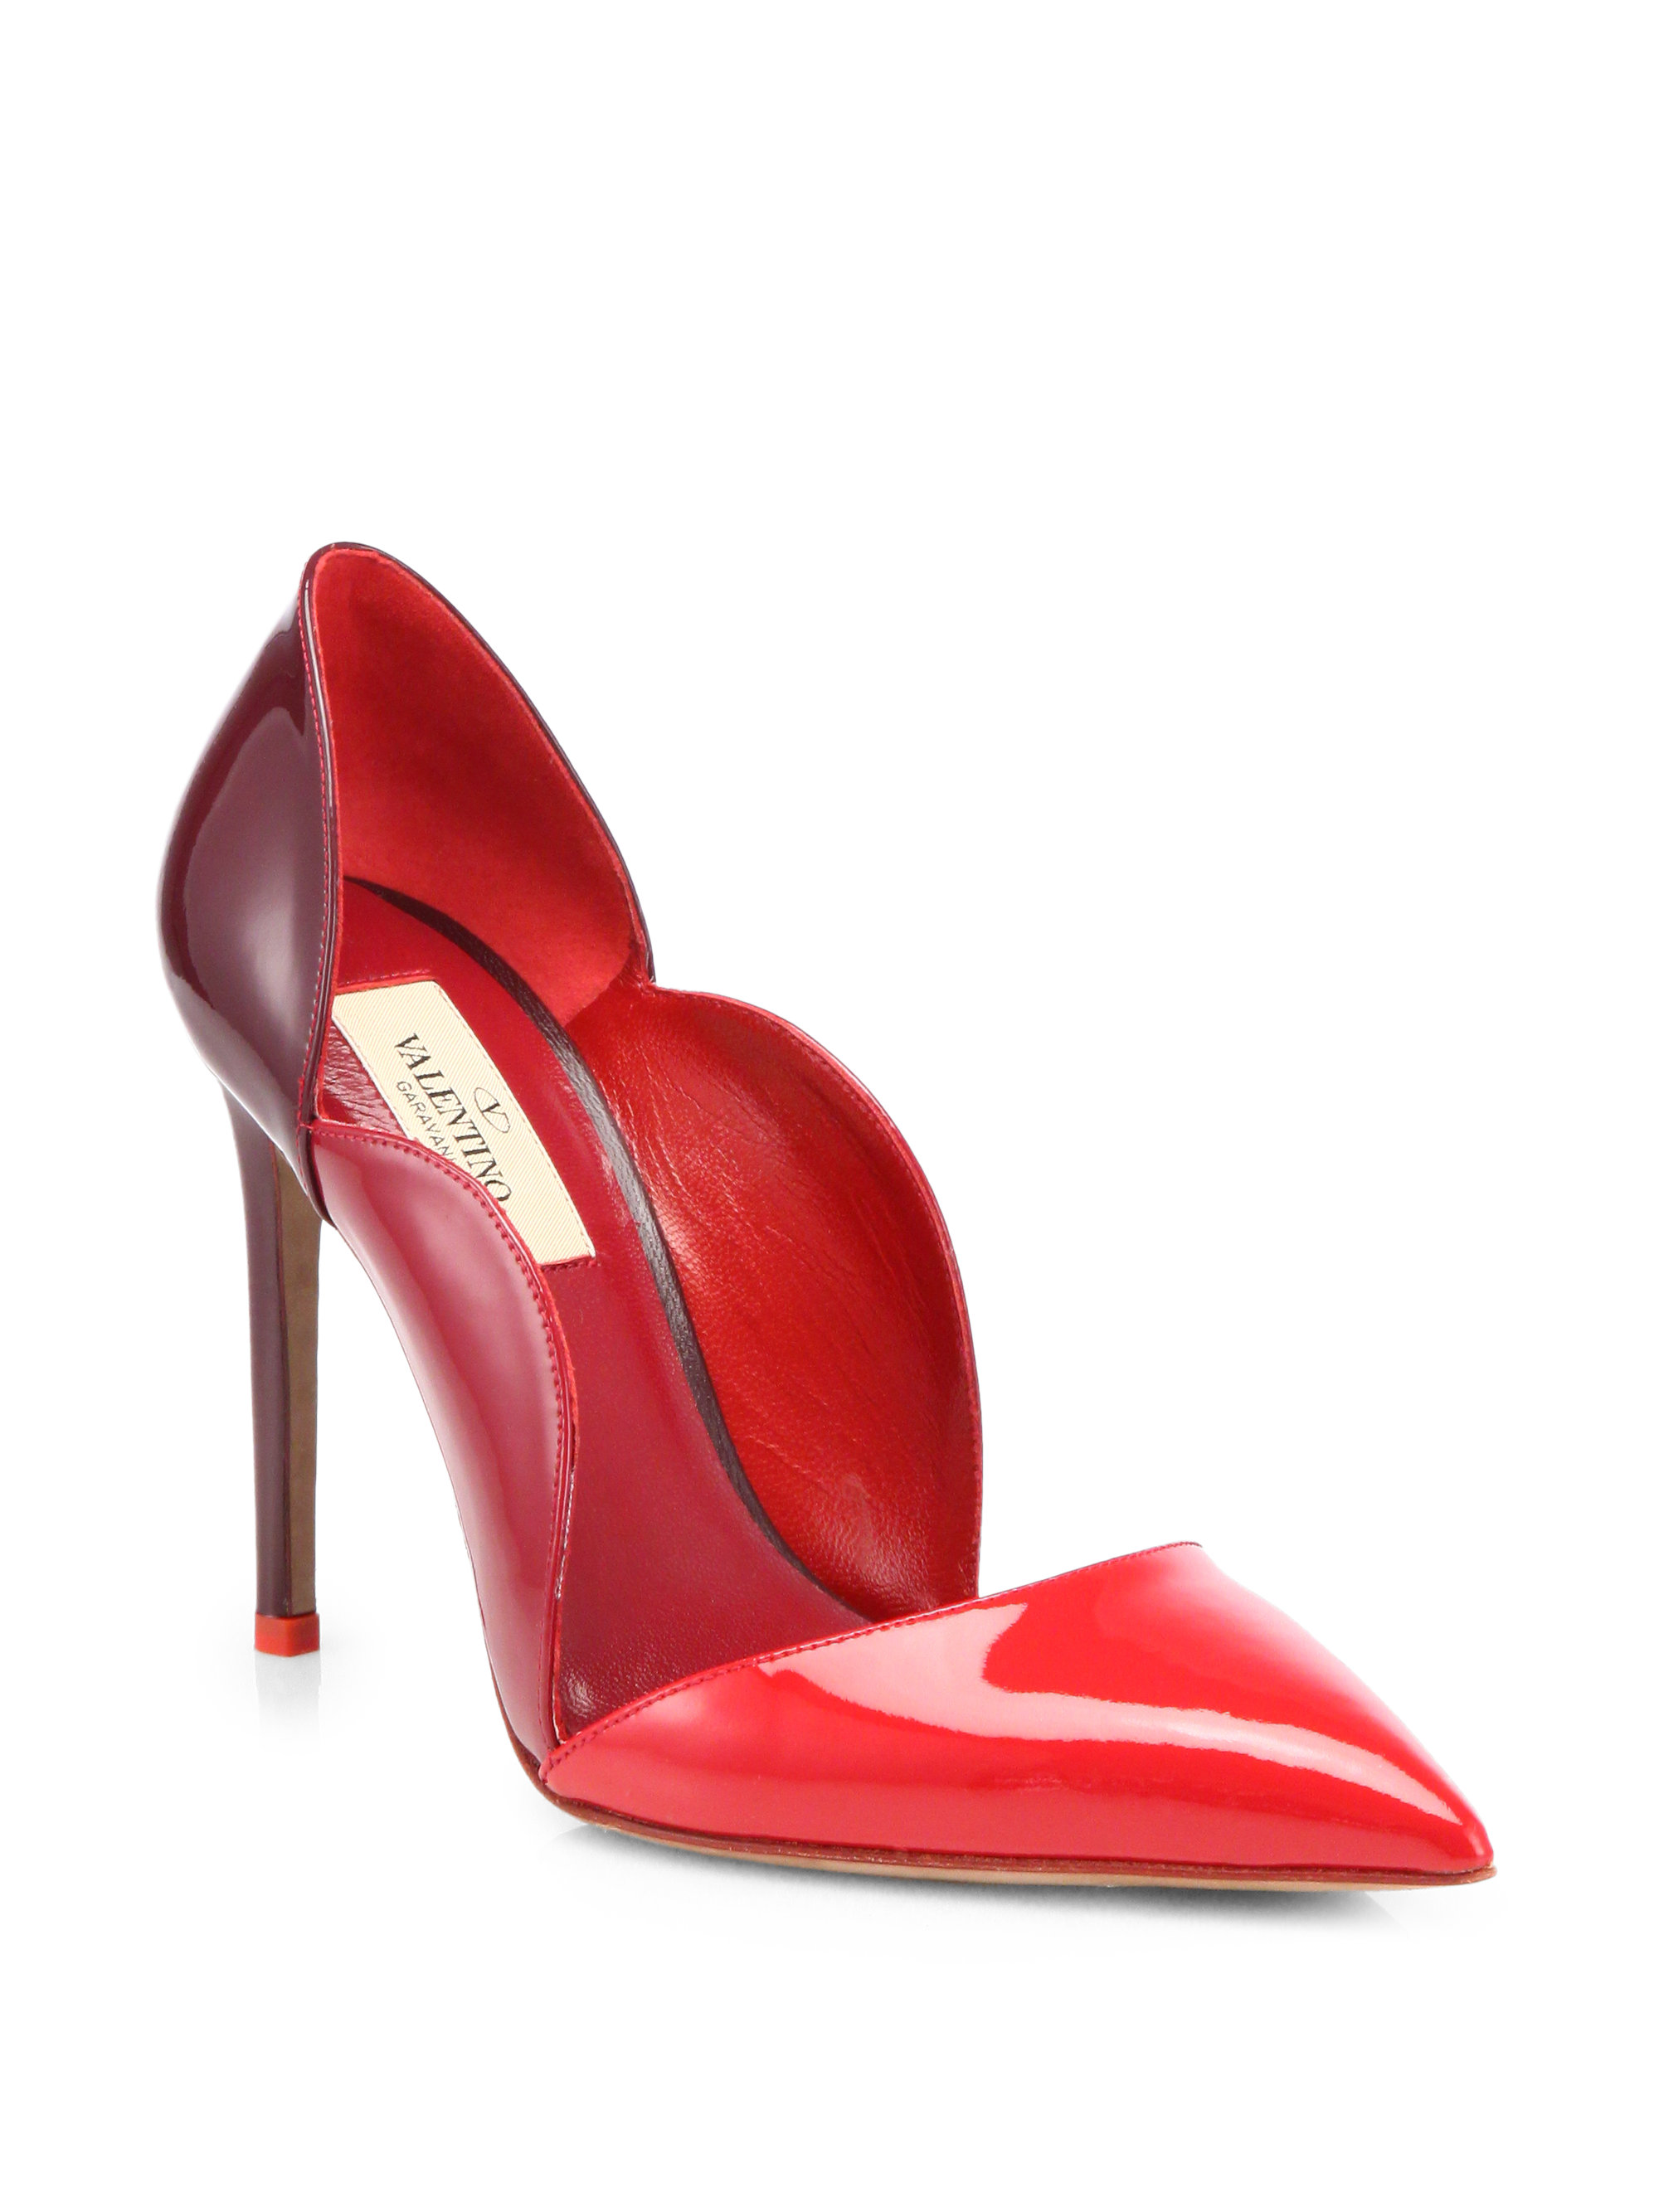 Beautiful Valentino Leather Red Scalloped Pumps